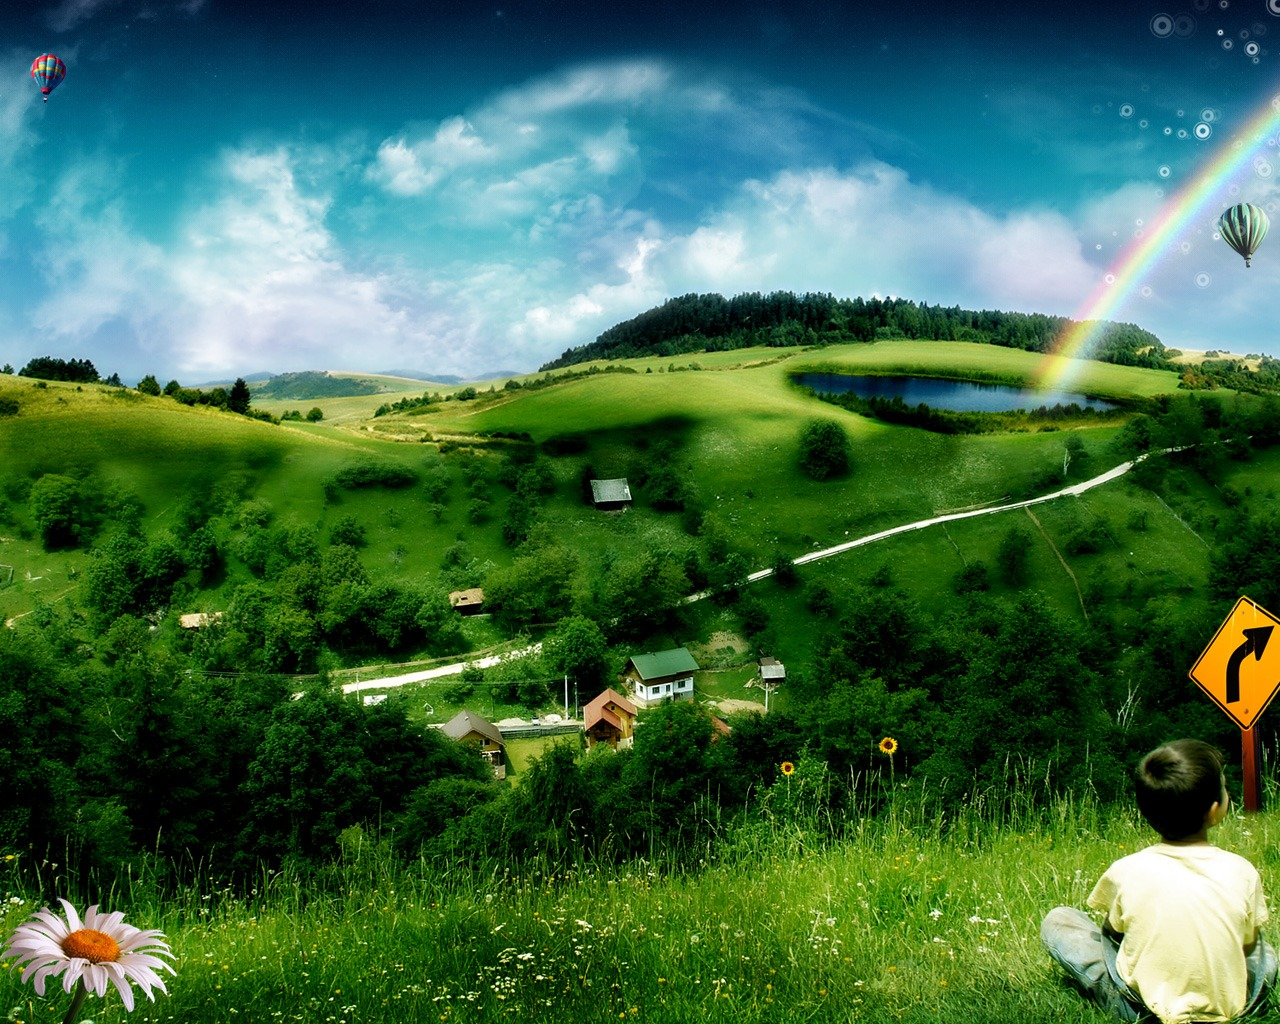 Fantasy Landscape By Photo Manipulation 1280*1024 No - Rainbow Images Hd Natural , HD Wallpaper & Backgrounds